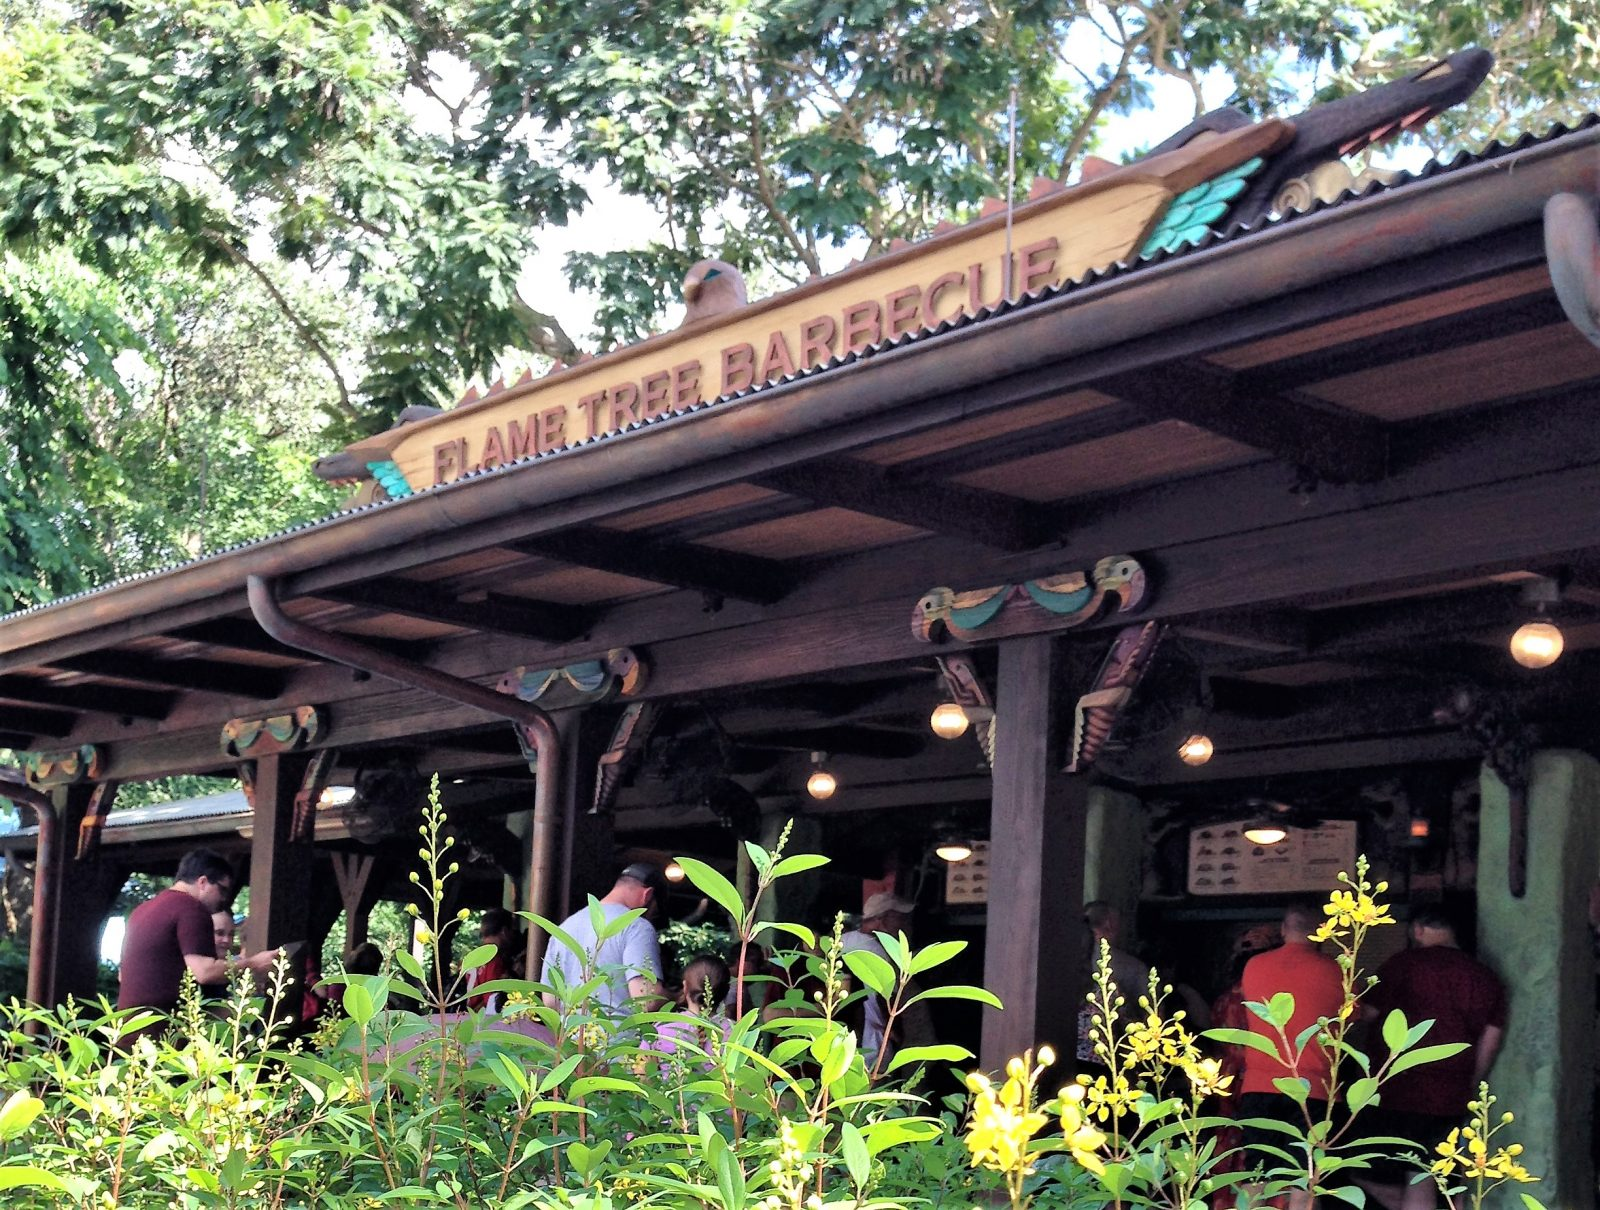 flame tree barbecue sign and exterior